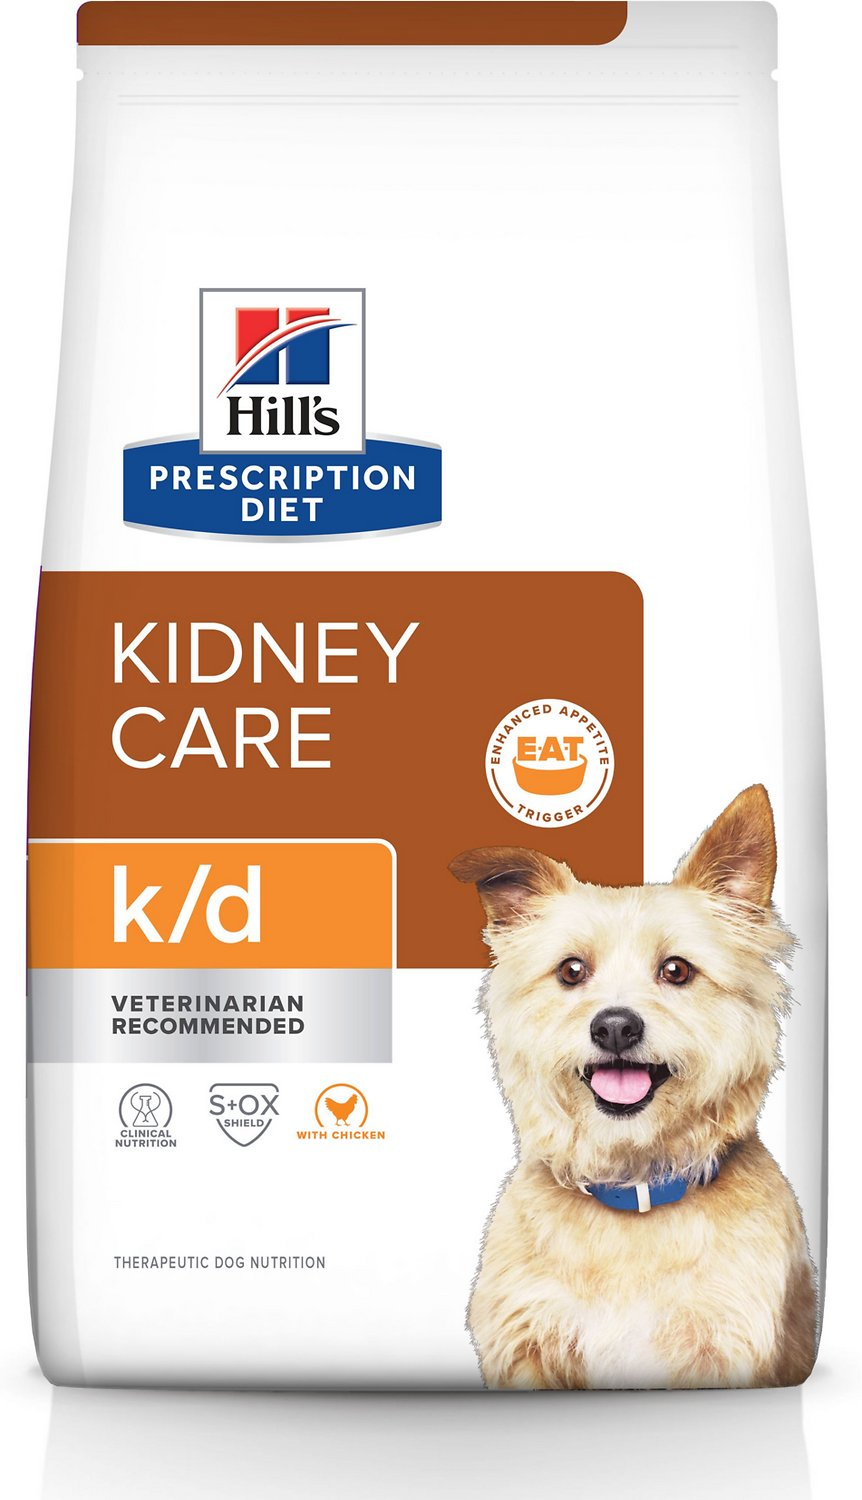 Dry Dog Food For Kidney Health